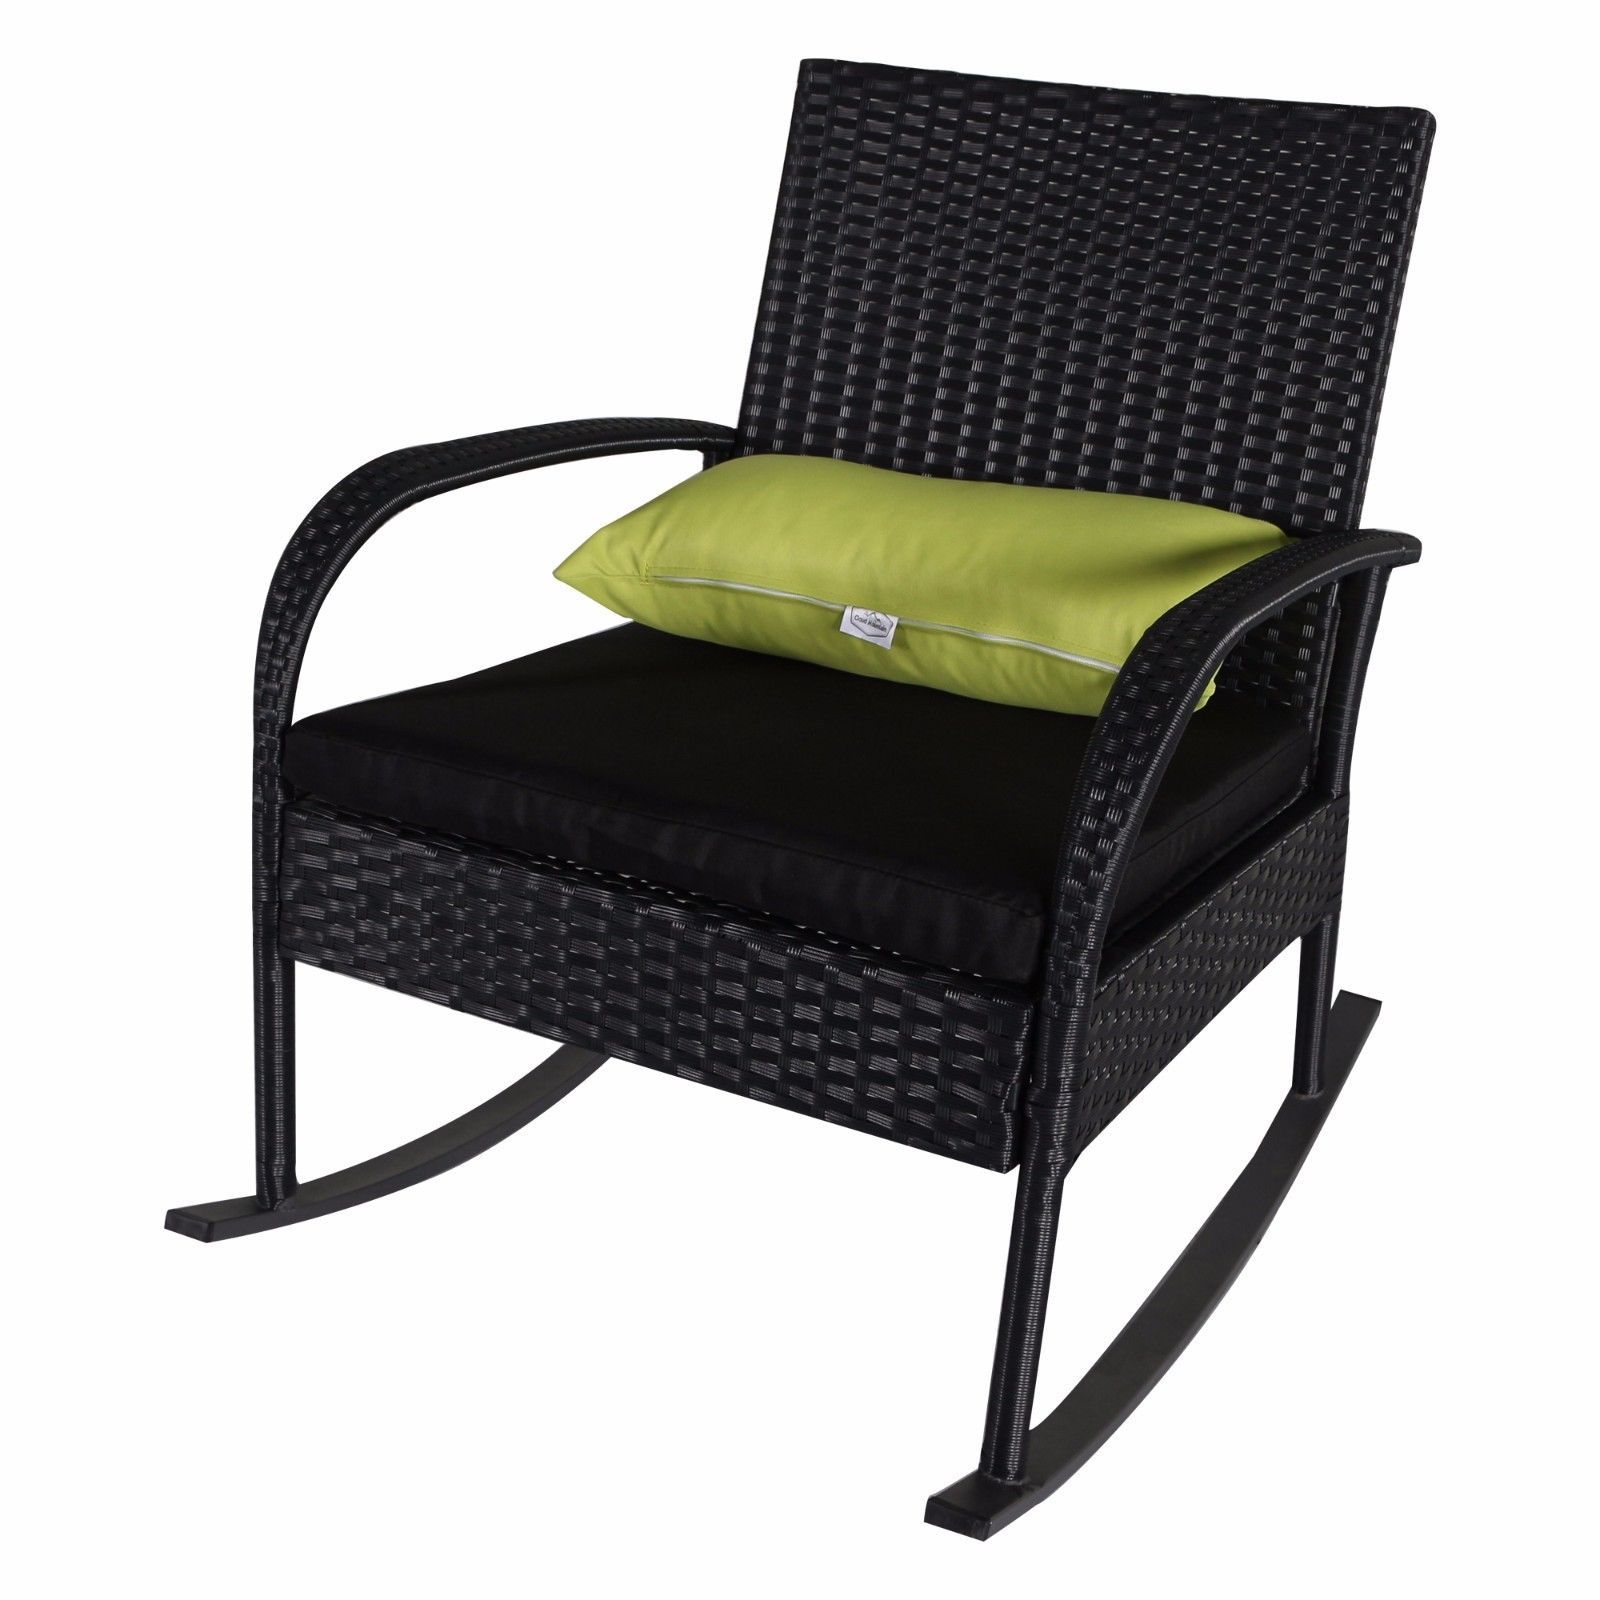 Outdoor 3 PC Rocking Chair Set Wicker Bistro, Black Cushion with Black Rattan